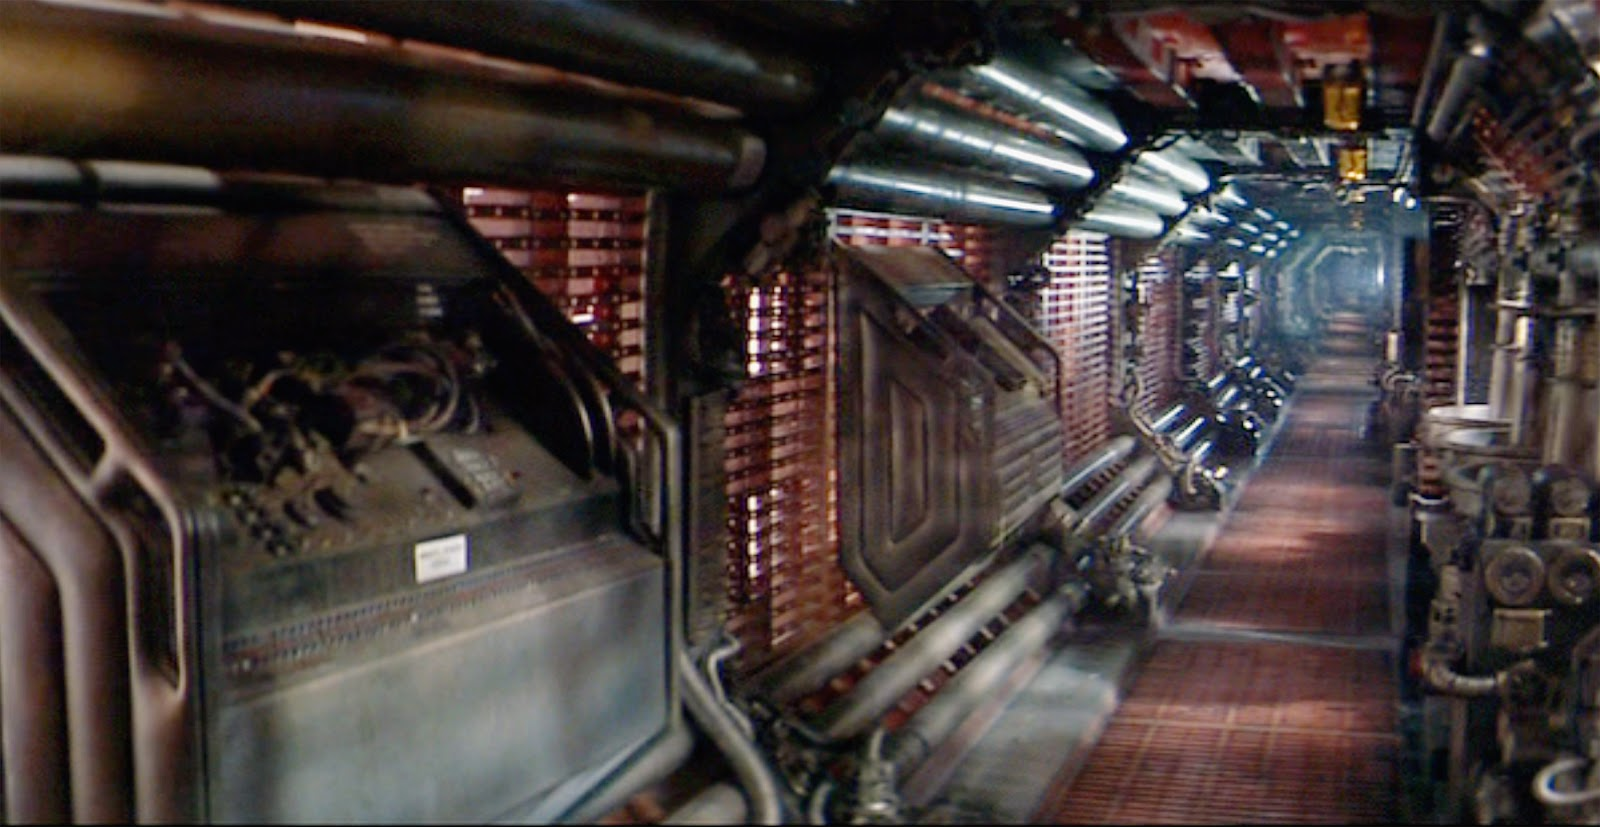 ridley scott 39 s alien 1979 kayliegh anderson. Black Bedroom Furniture Sets. Home Design Ideas